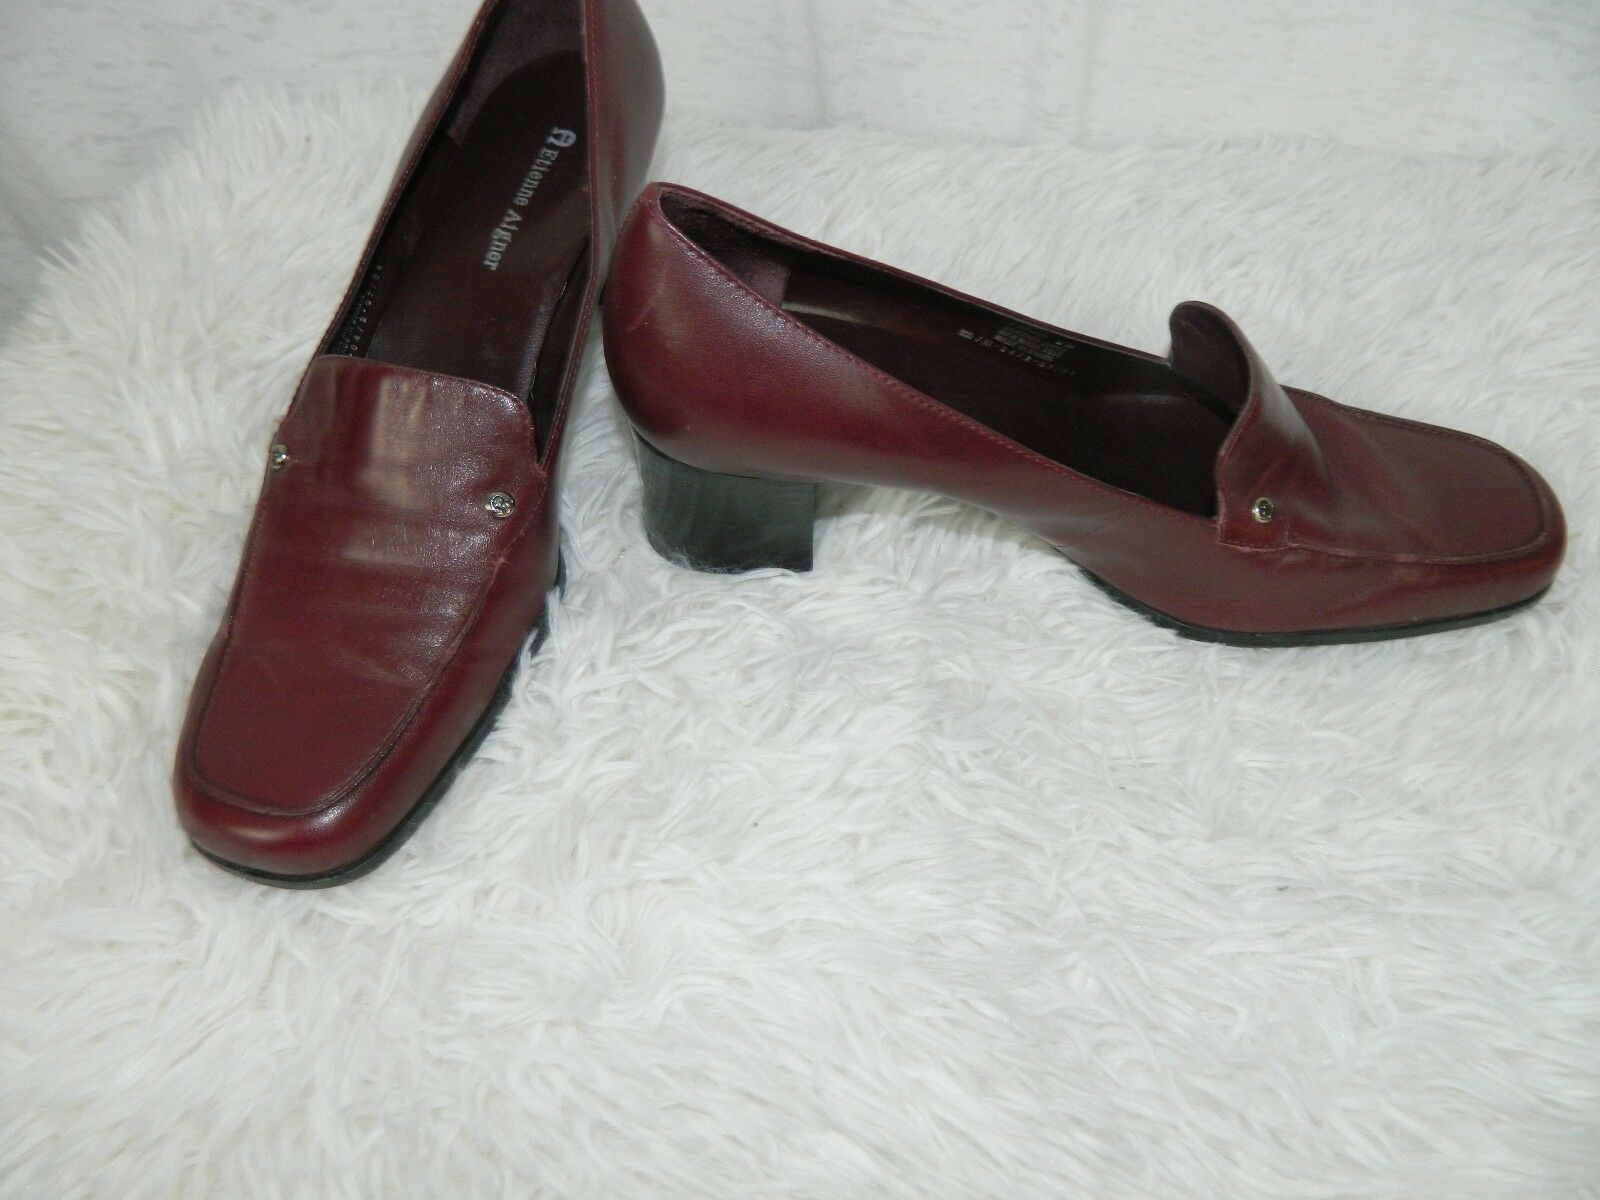 Etienne Aigner Loafer Shoe Women's SIZE Brown Burgundy Leather Heel SIZE Women's 8M 92a9f0